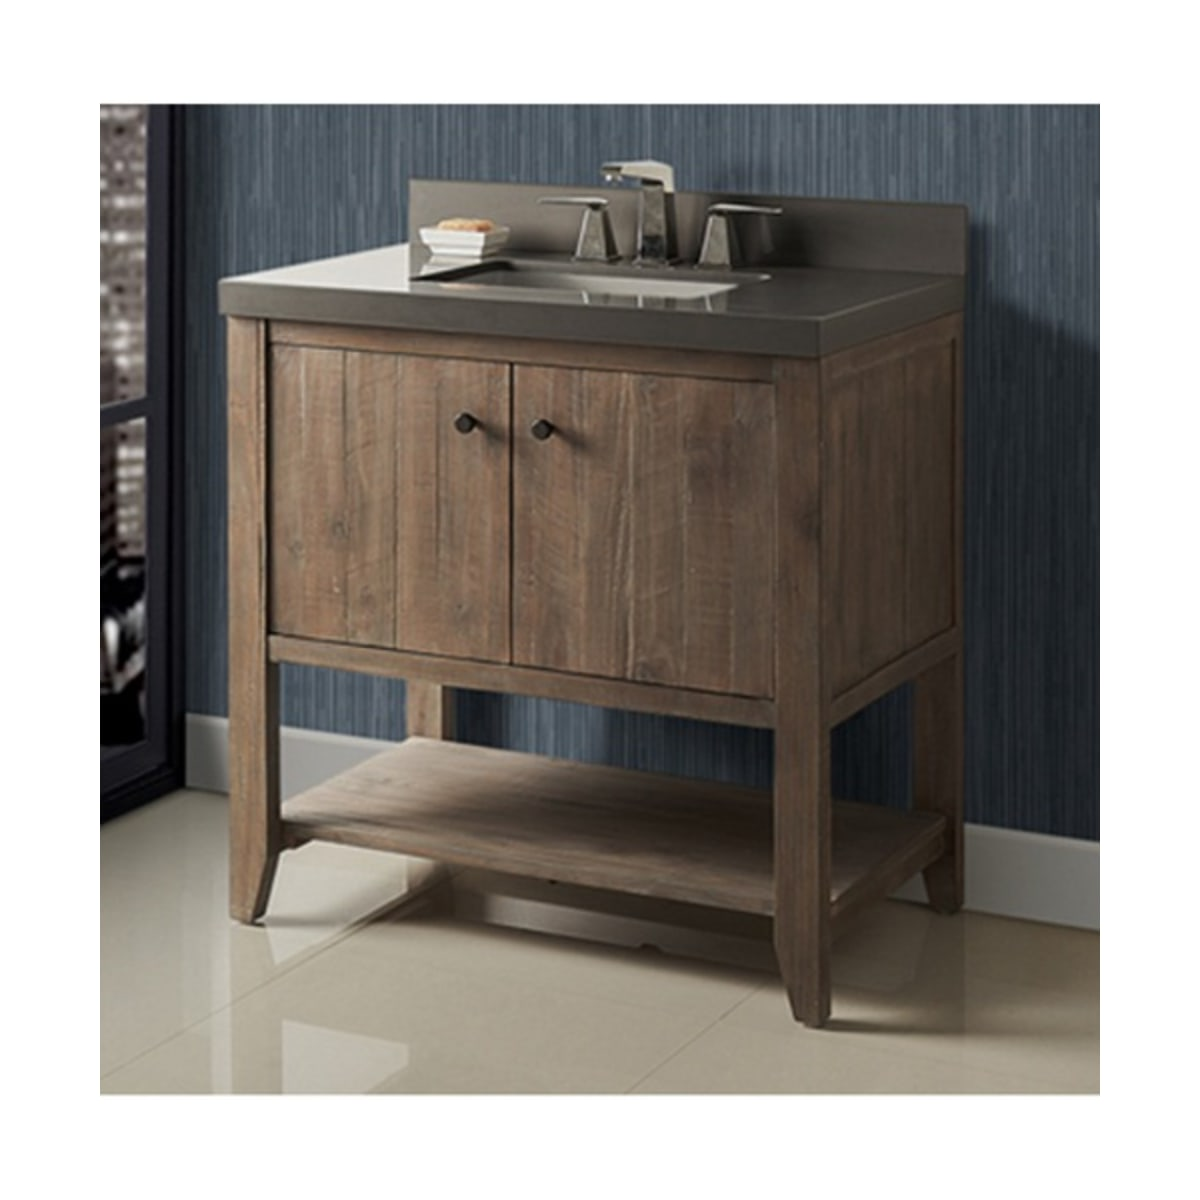 Fairmont Designs 1516 Vh36 Bathroom Vanity Build Com